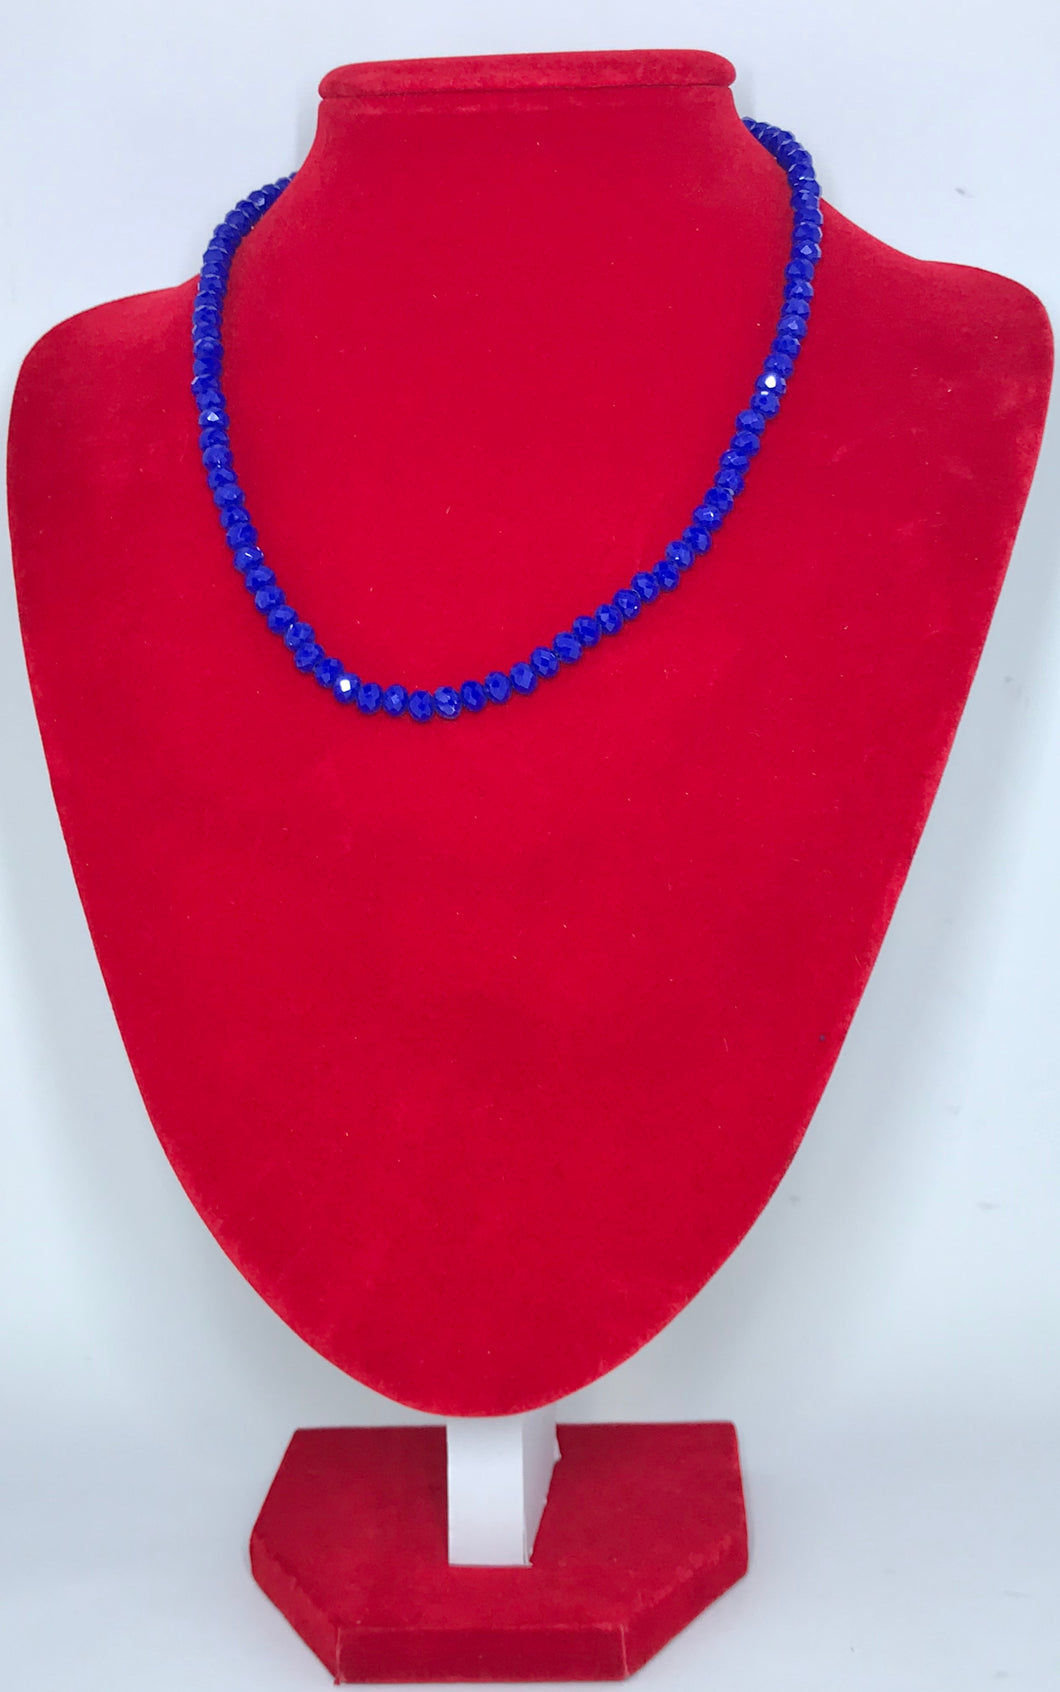 Glass Beads - RoyalBlue/4mm